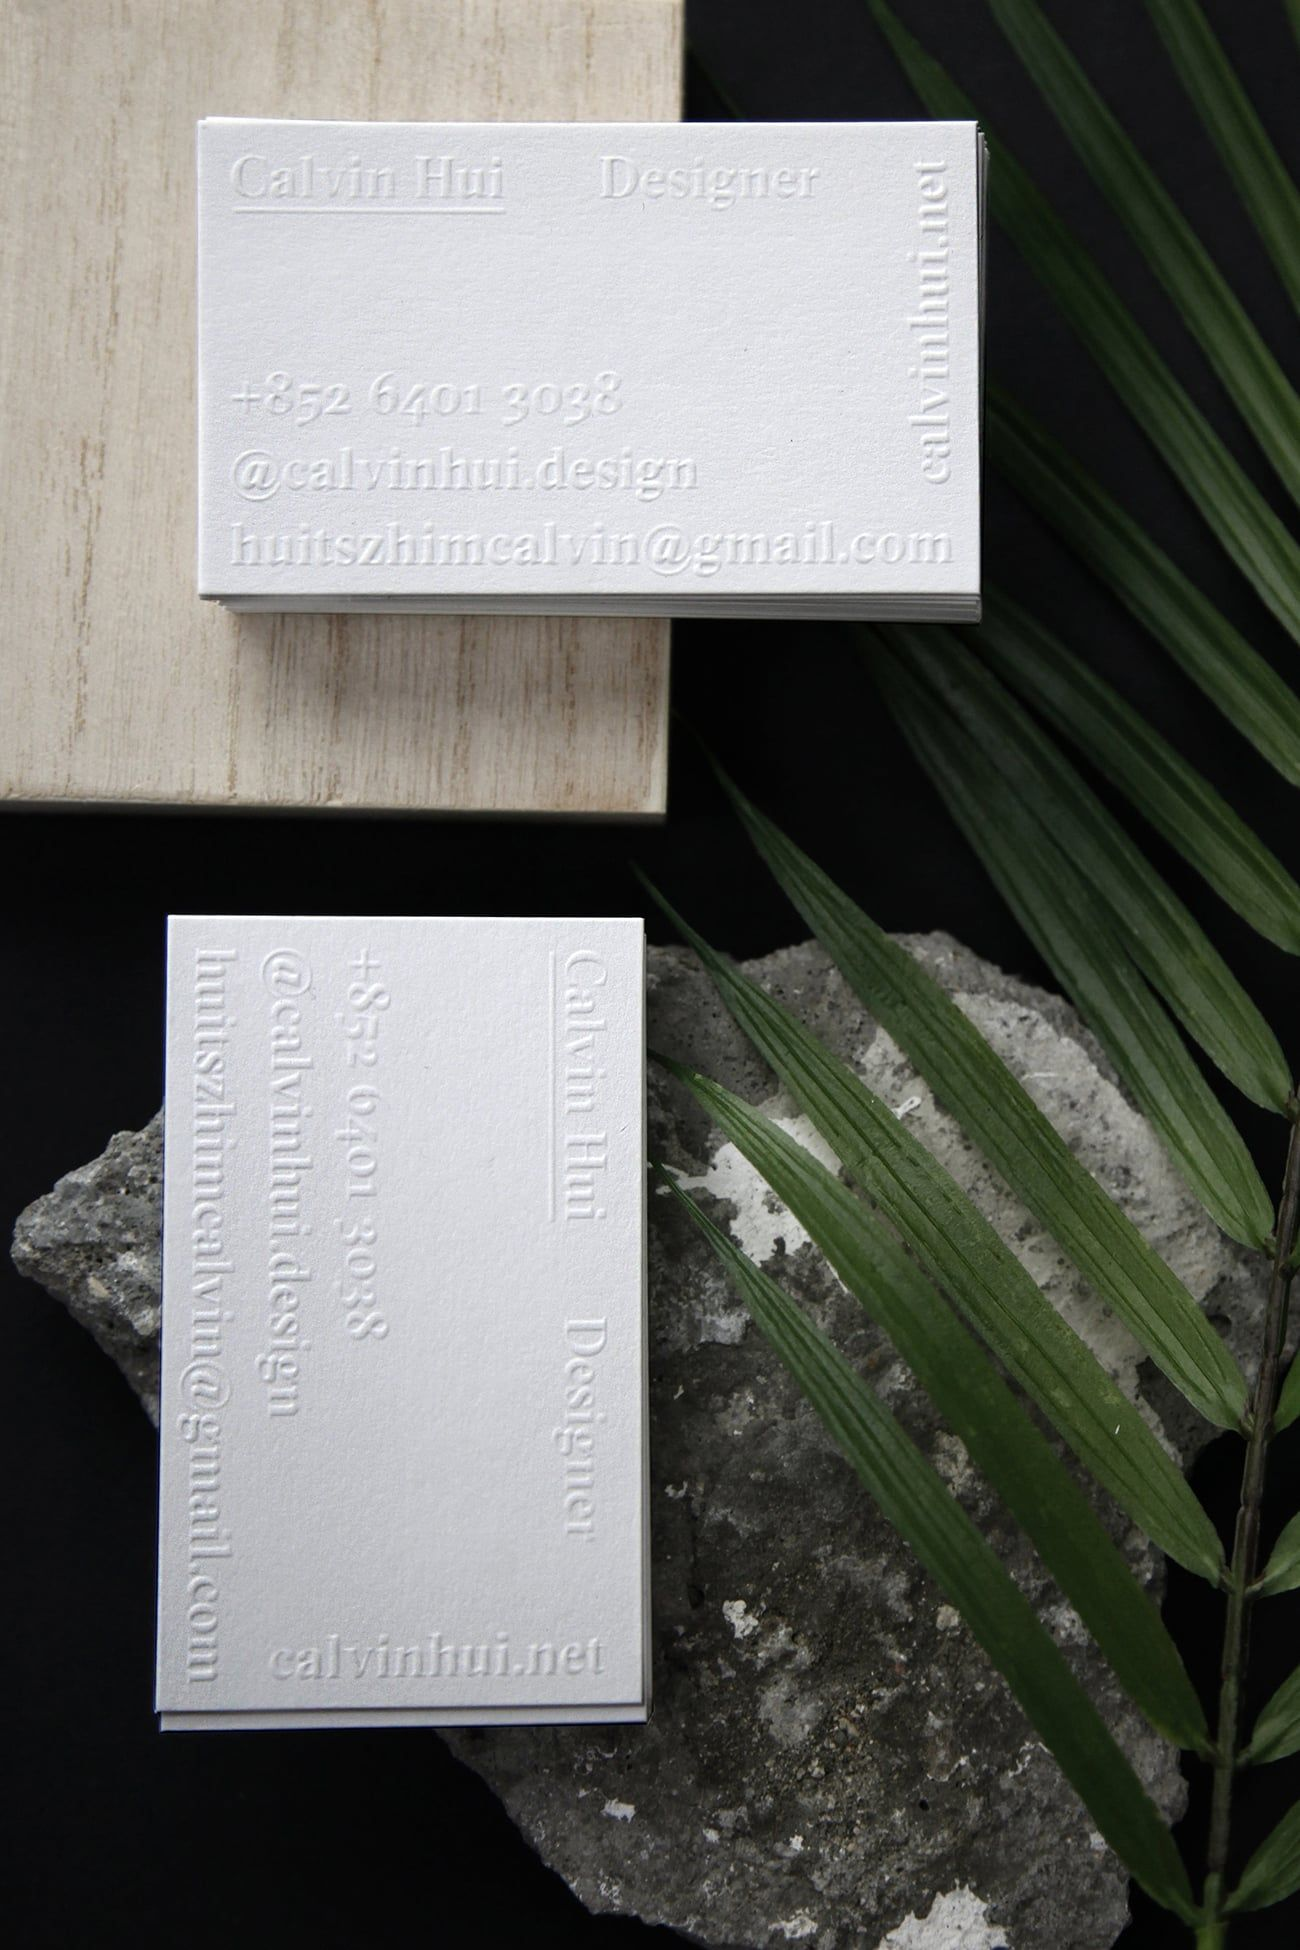 Calvin Hui designed its own business cards for his studio. He is a ...